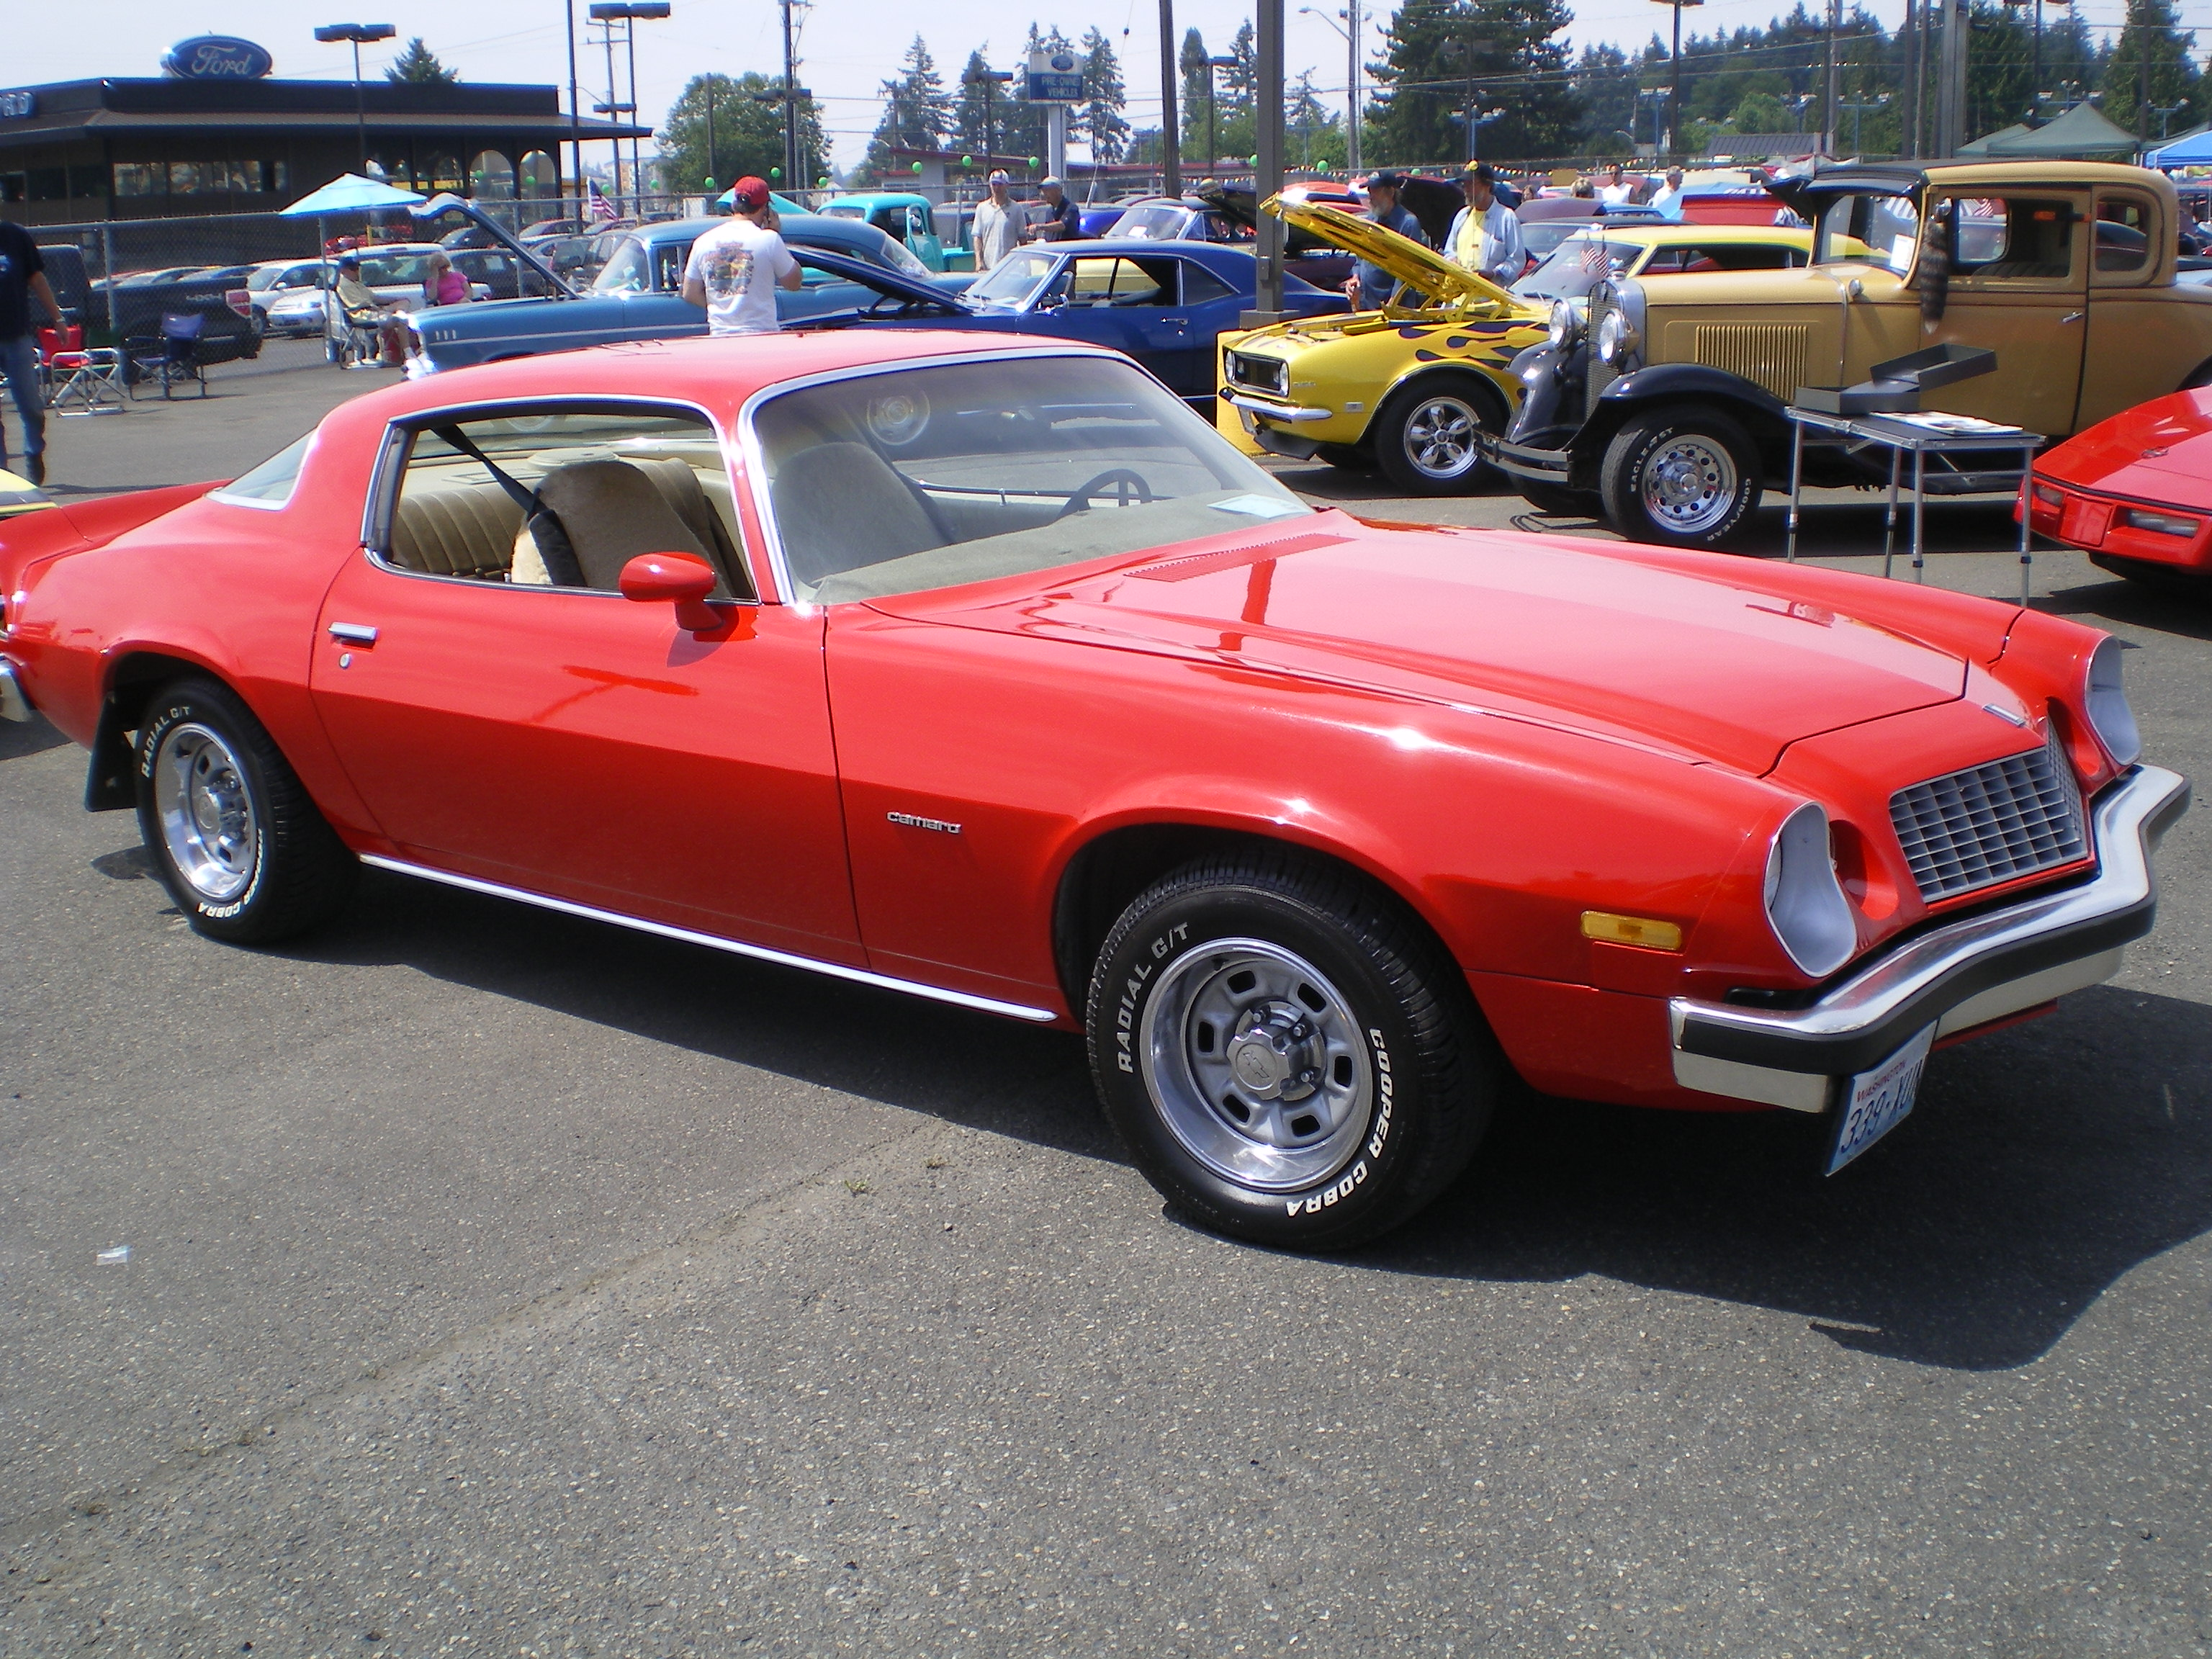 1976 Chevrolet Camaro Images Pictures And Videos